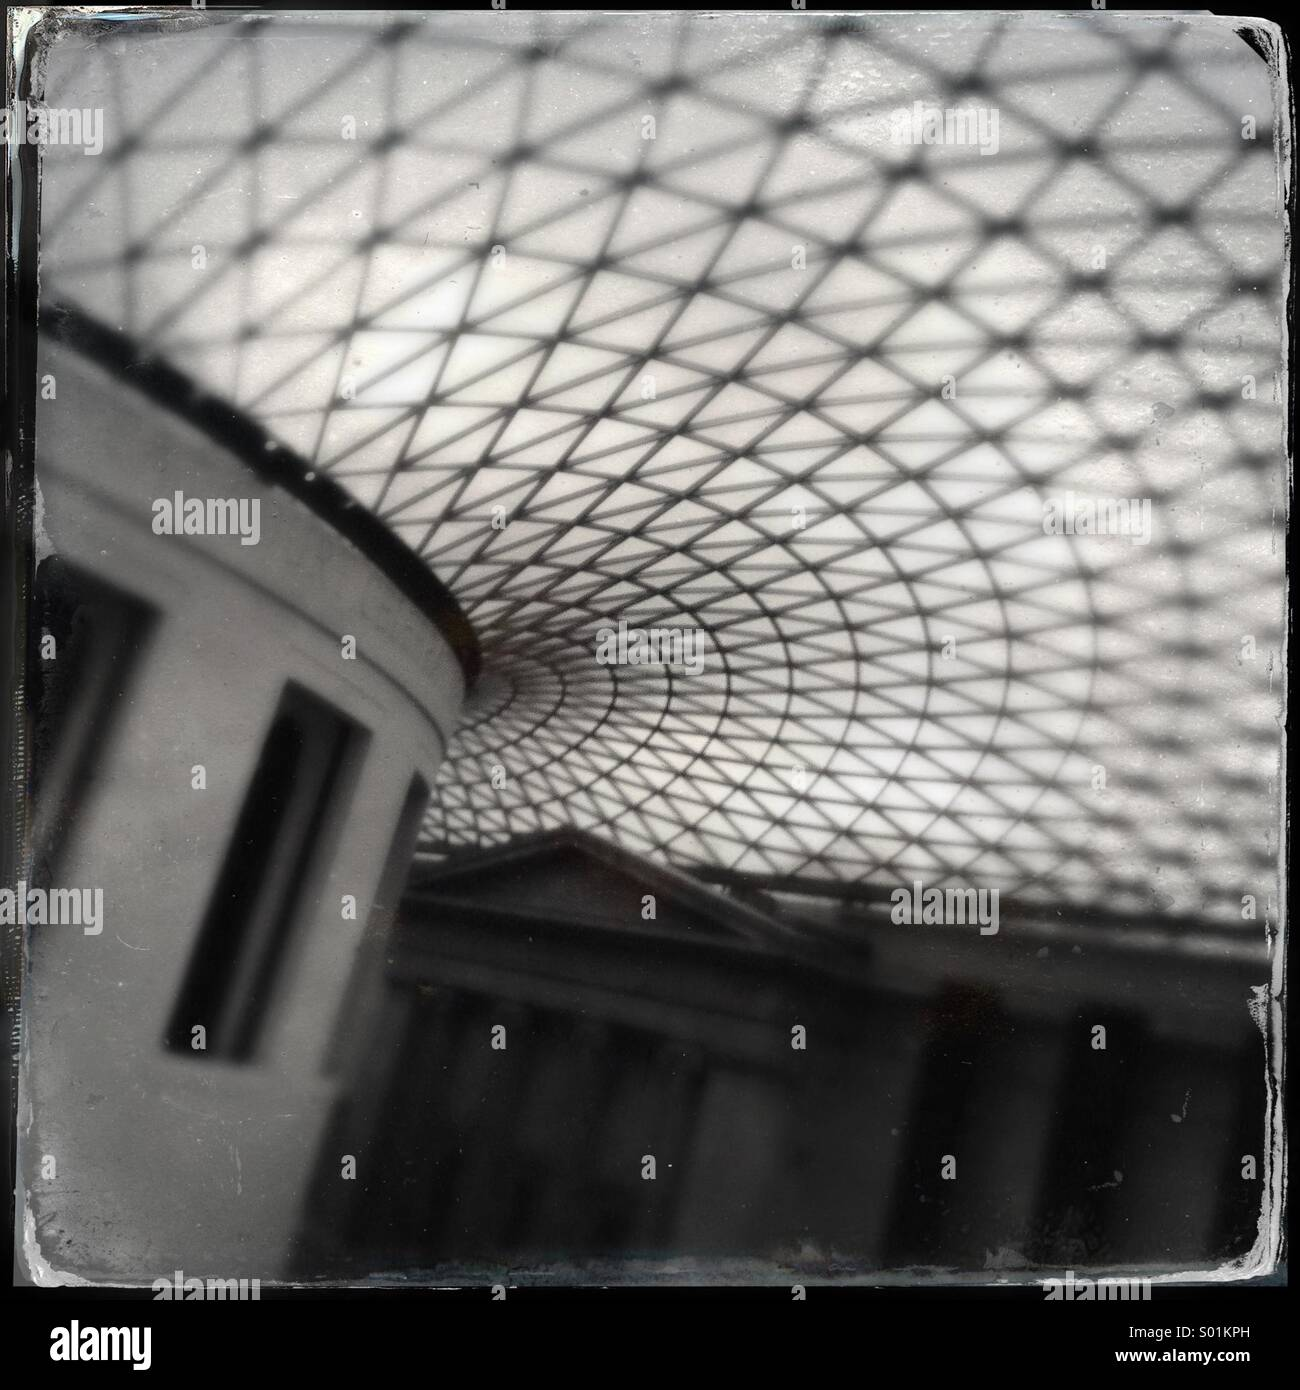 Glass roof covering the British Museum Great Court in London, UK. Designed by Foster and Partners, the roof transformed - Stock Image